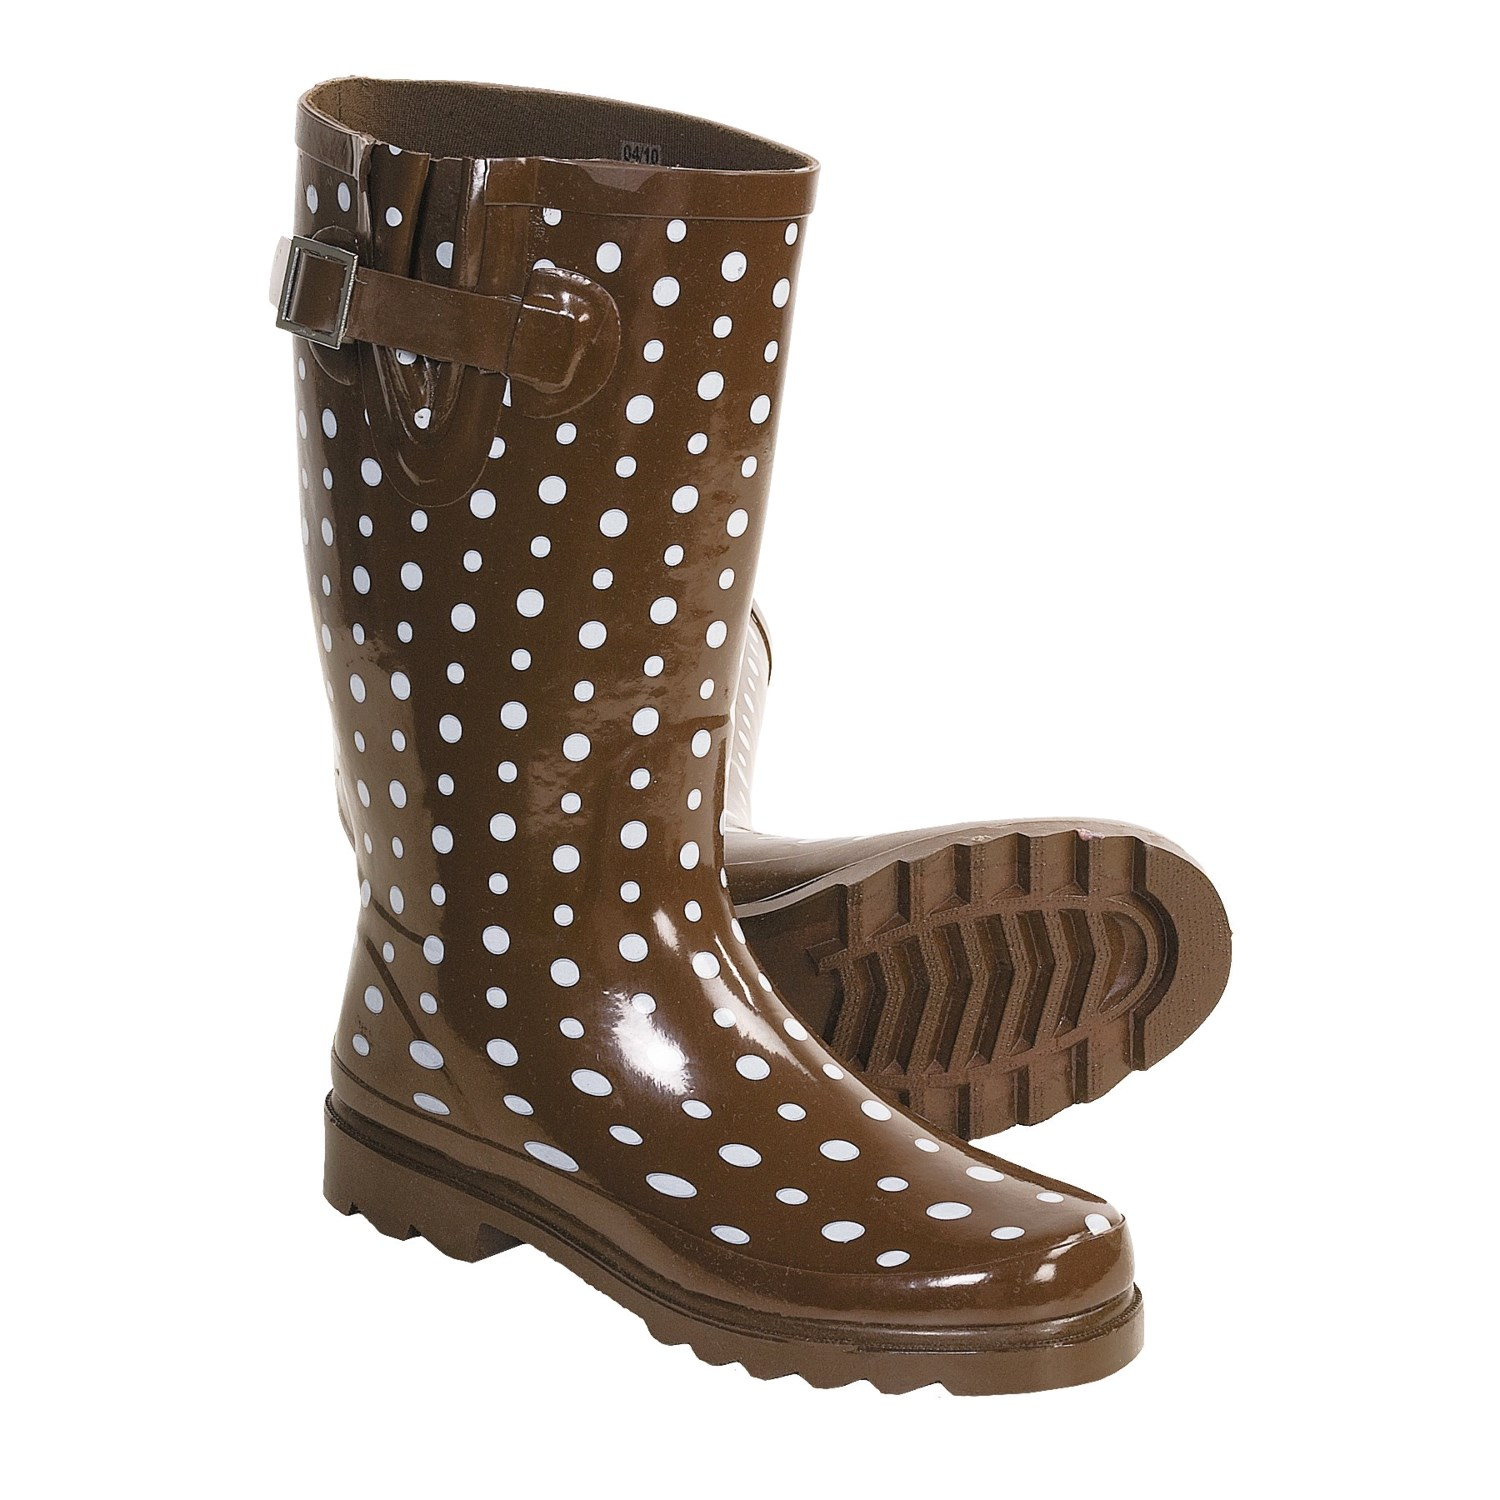 Nobody likes damp socks or trench foot, which is why you need a reliable set of rain boots. Prepare for the rain and save your expensive work shoes with quality rain footwear. Rain boots are.